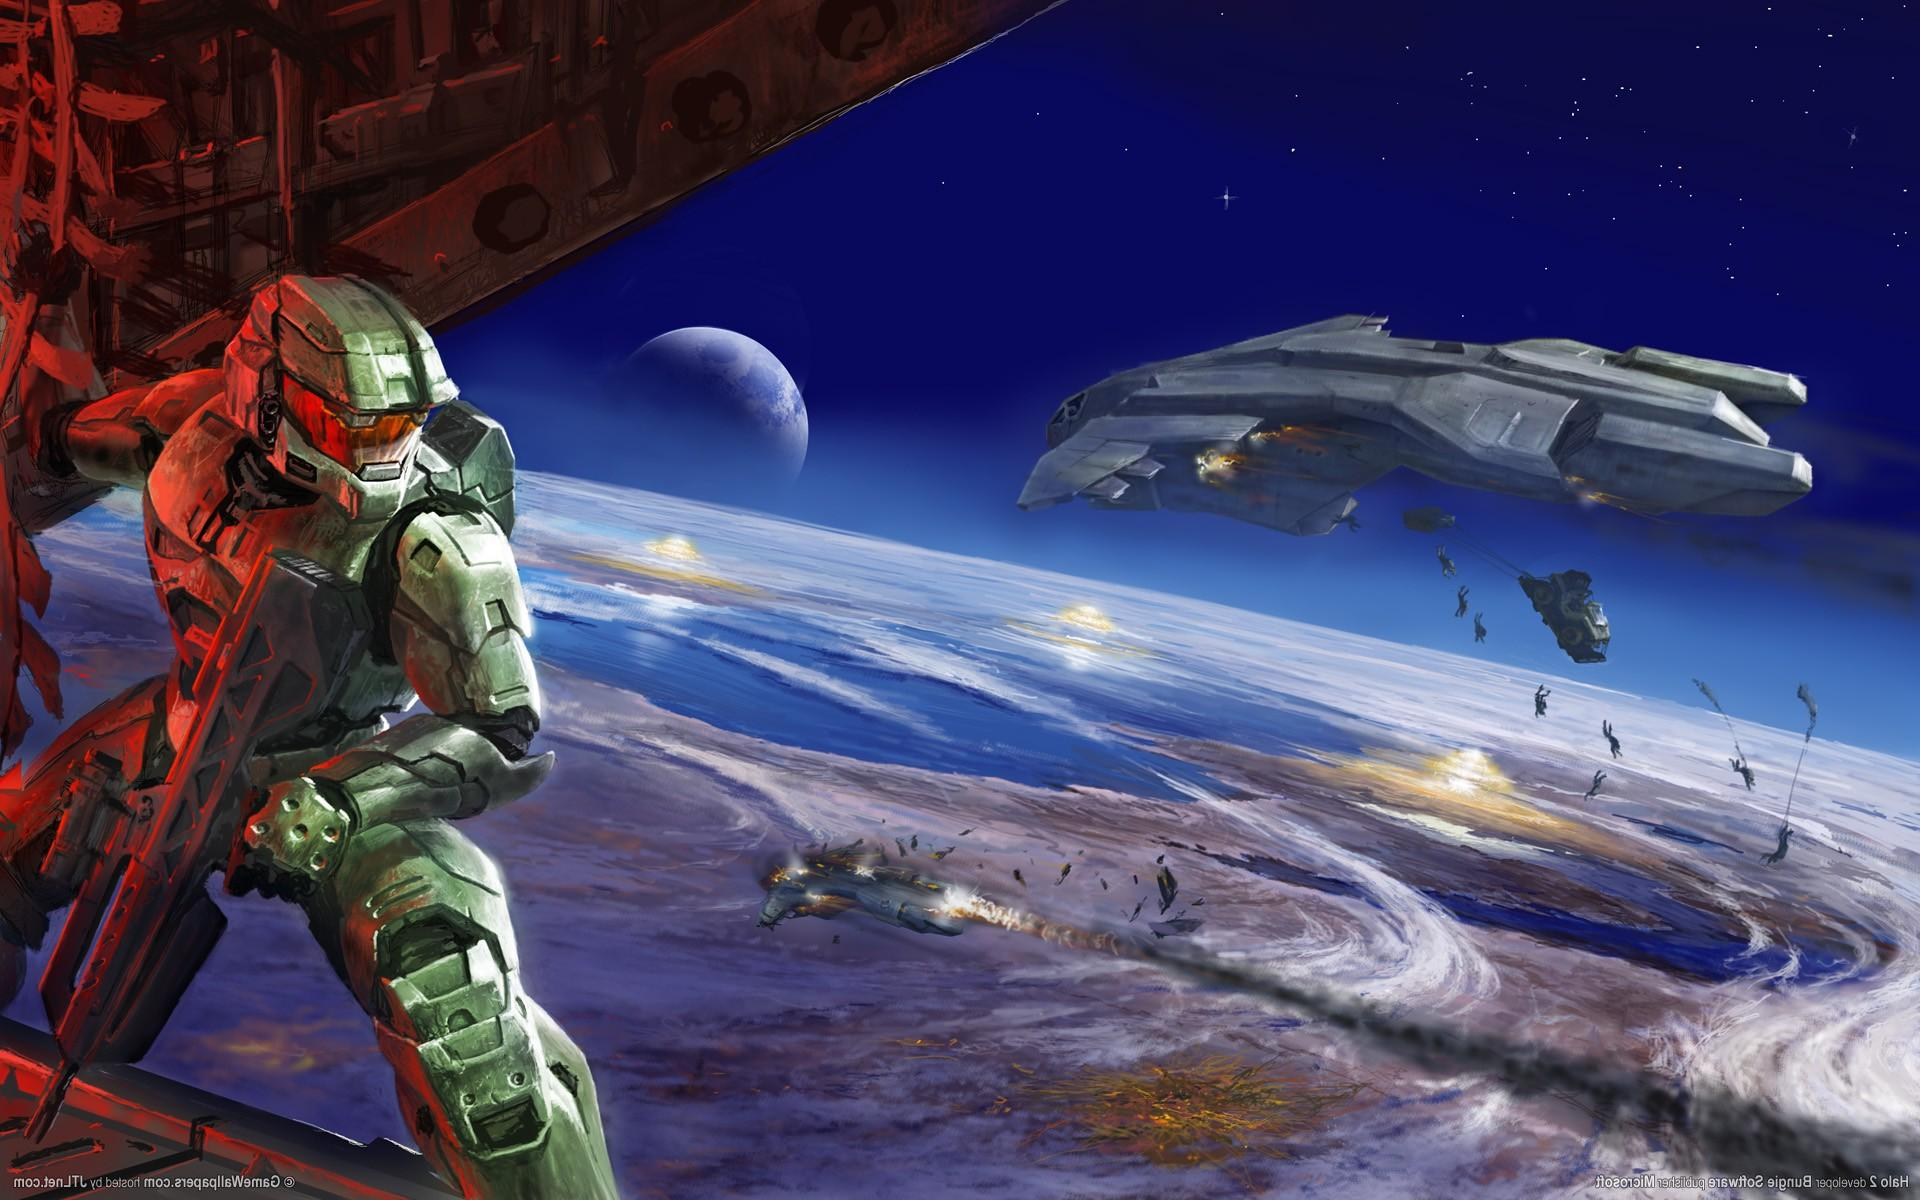 Wallpapers : 1920x1200 px, artwork, Bungie, Halo 2, Halo 3, Master